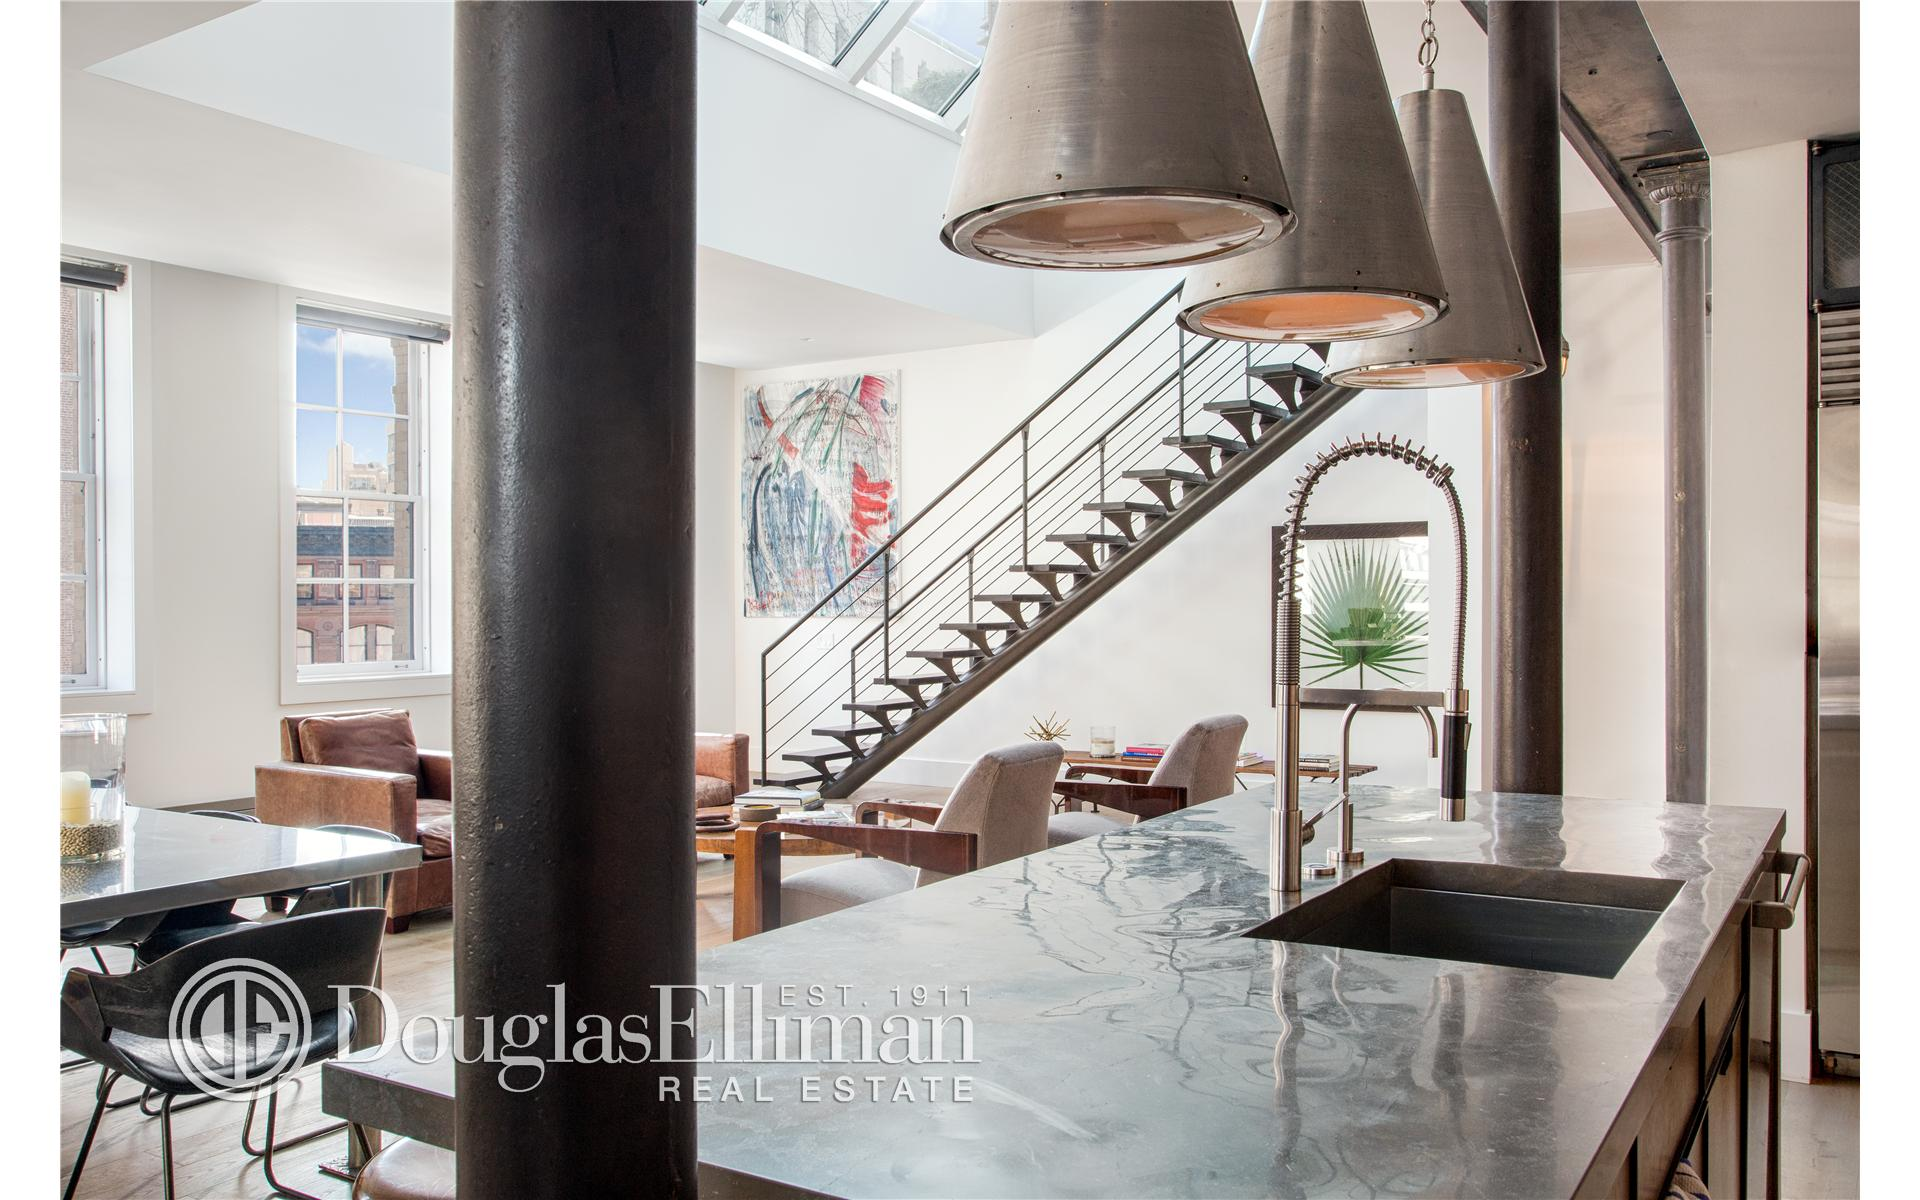 Condominium for Sale at 140 Franklin Street New York, New York 10013 United States